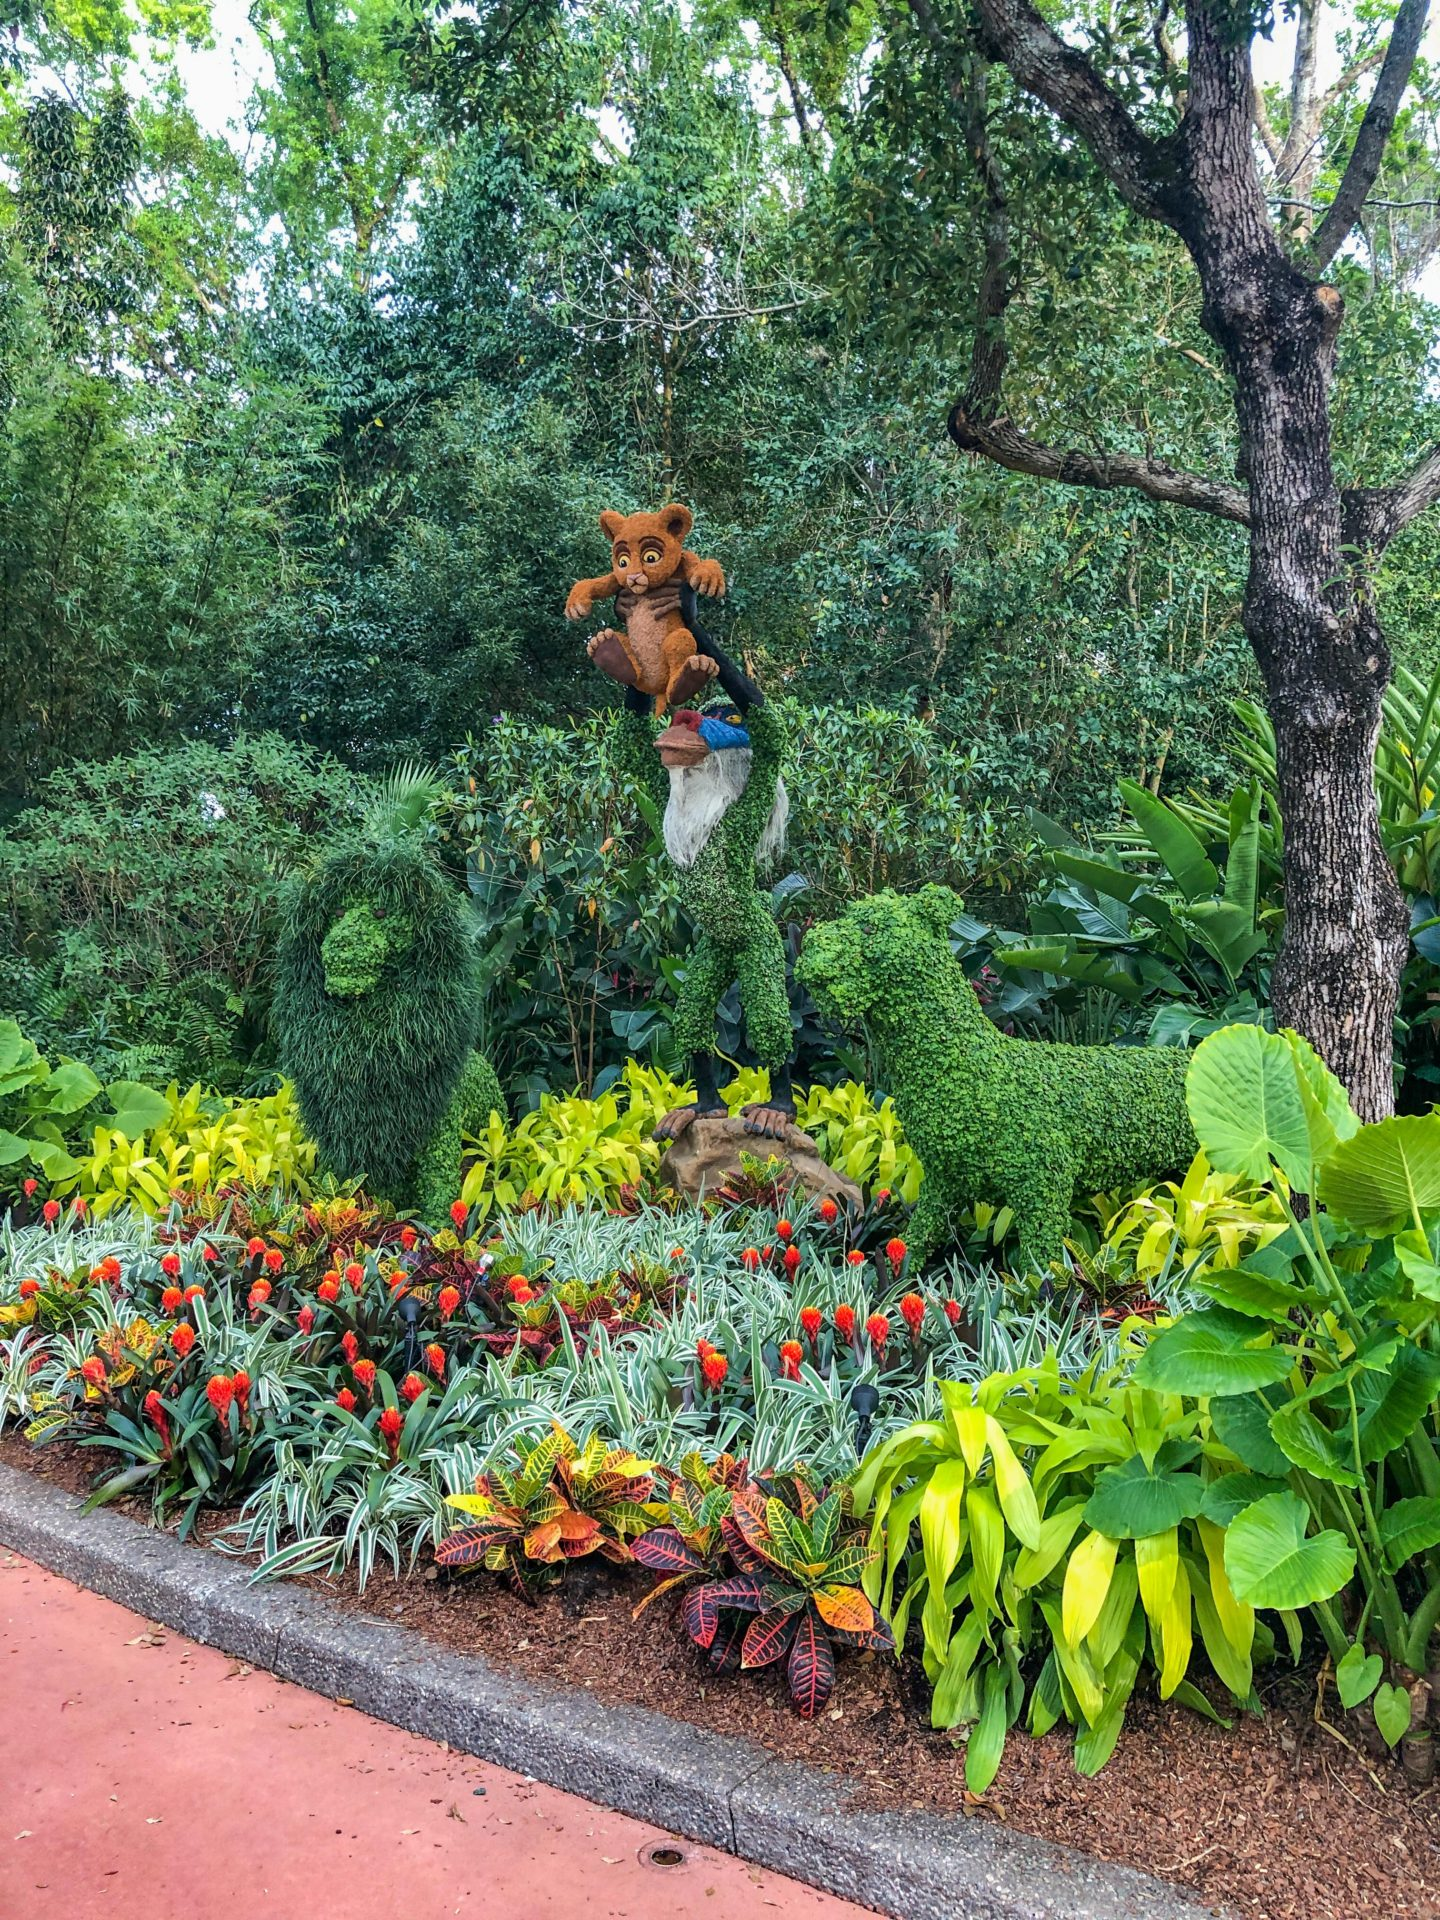 Adult Guide to Disney World Theme Parks Broken Down by Park | Running in Heels | Lion King topiaries in Epcot for the Epcot Flower & Garden Festival at Disney World.